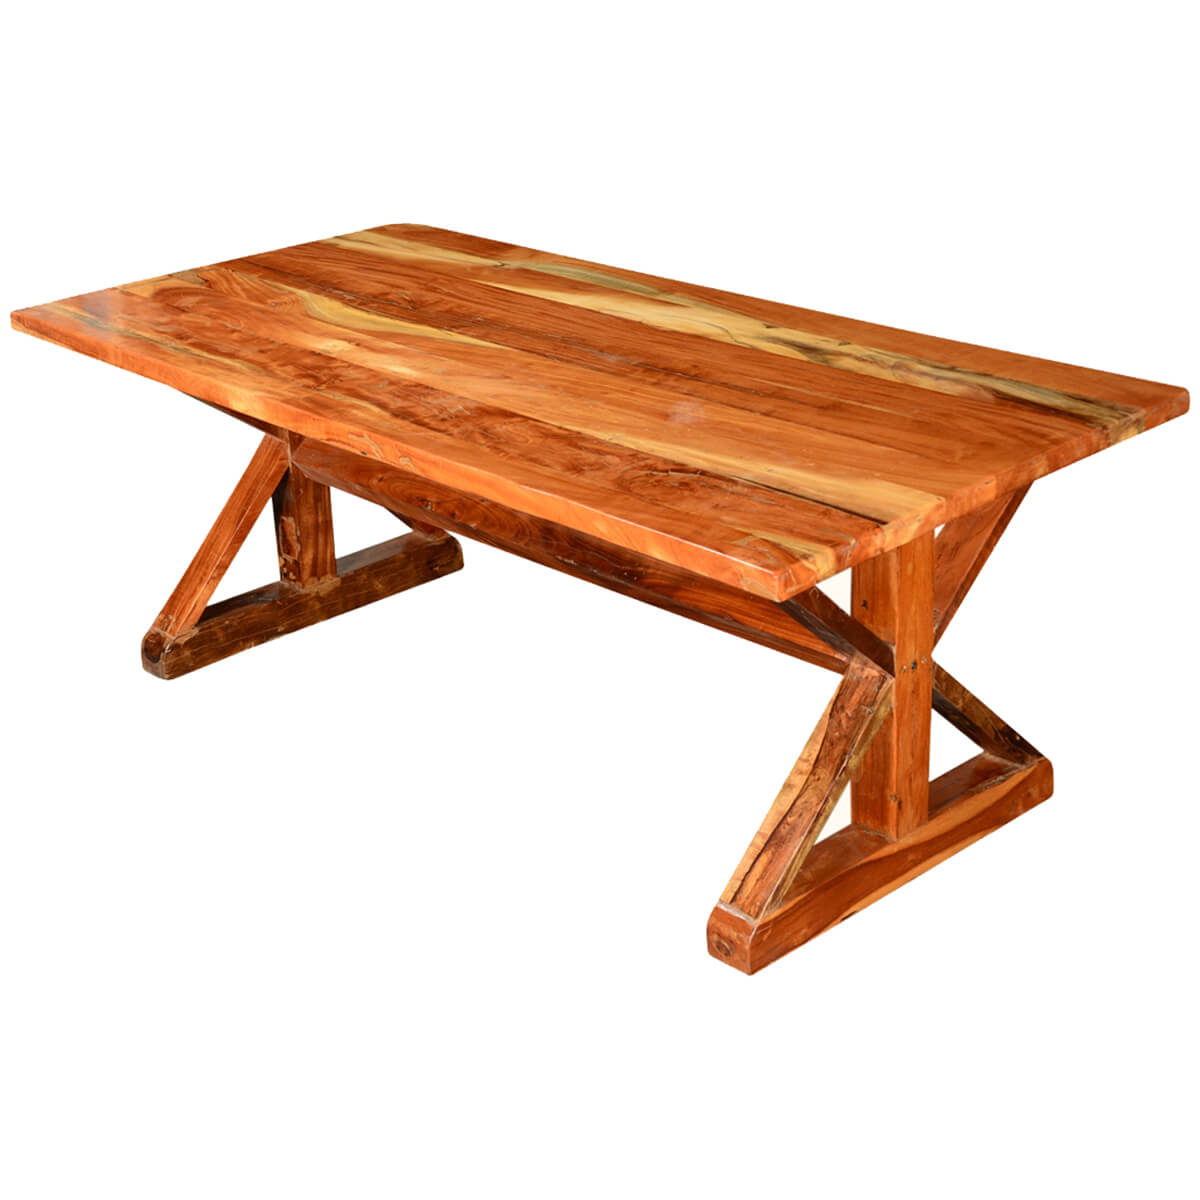 Rustic x legs acacia wood 78 5 picnic style trestle for Rustic trestle dining table